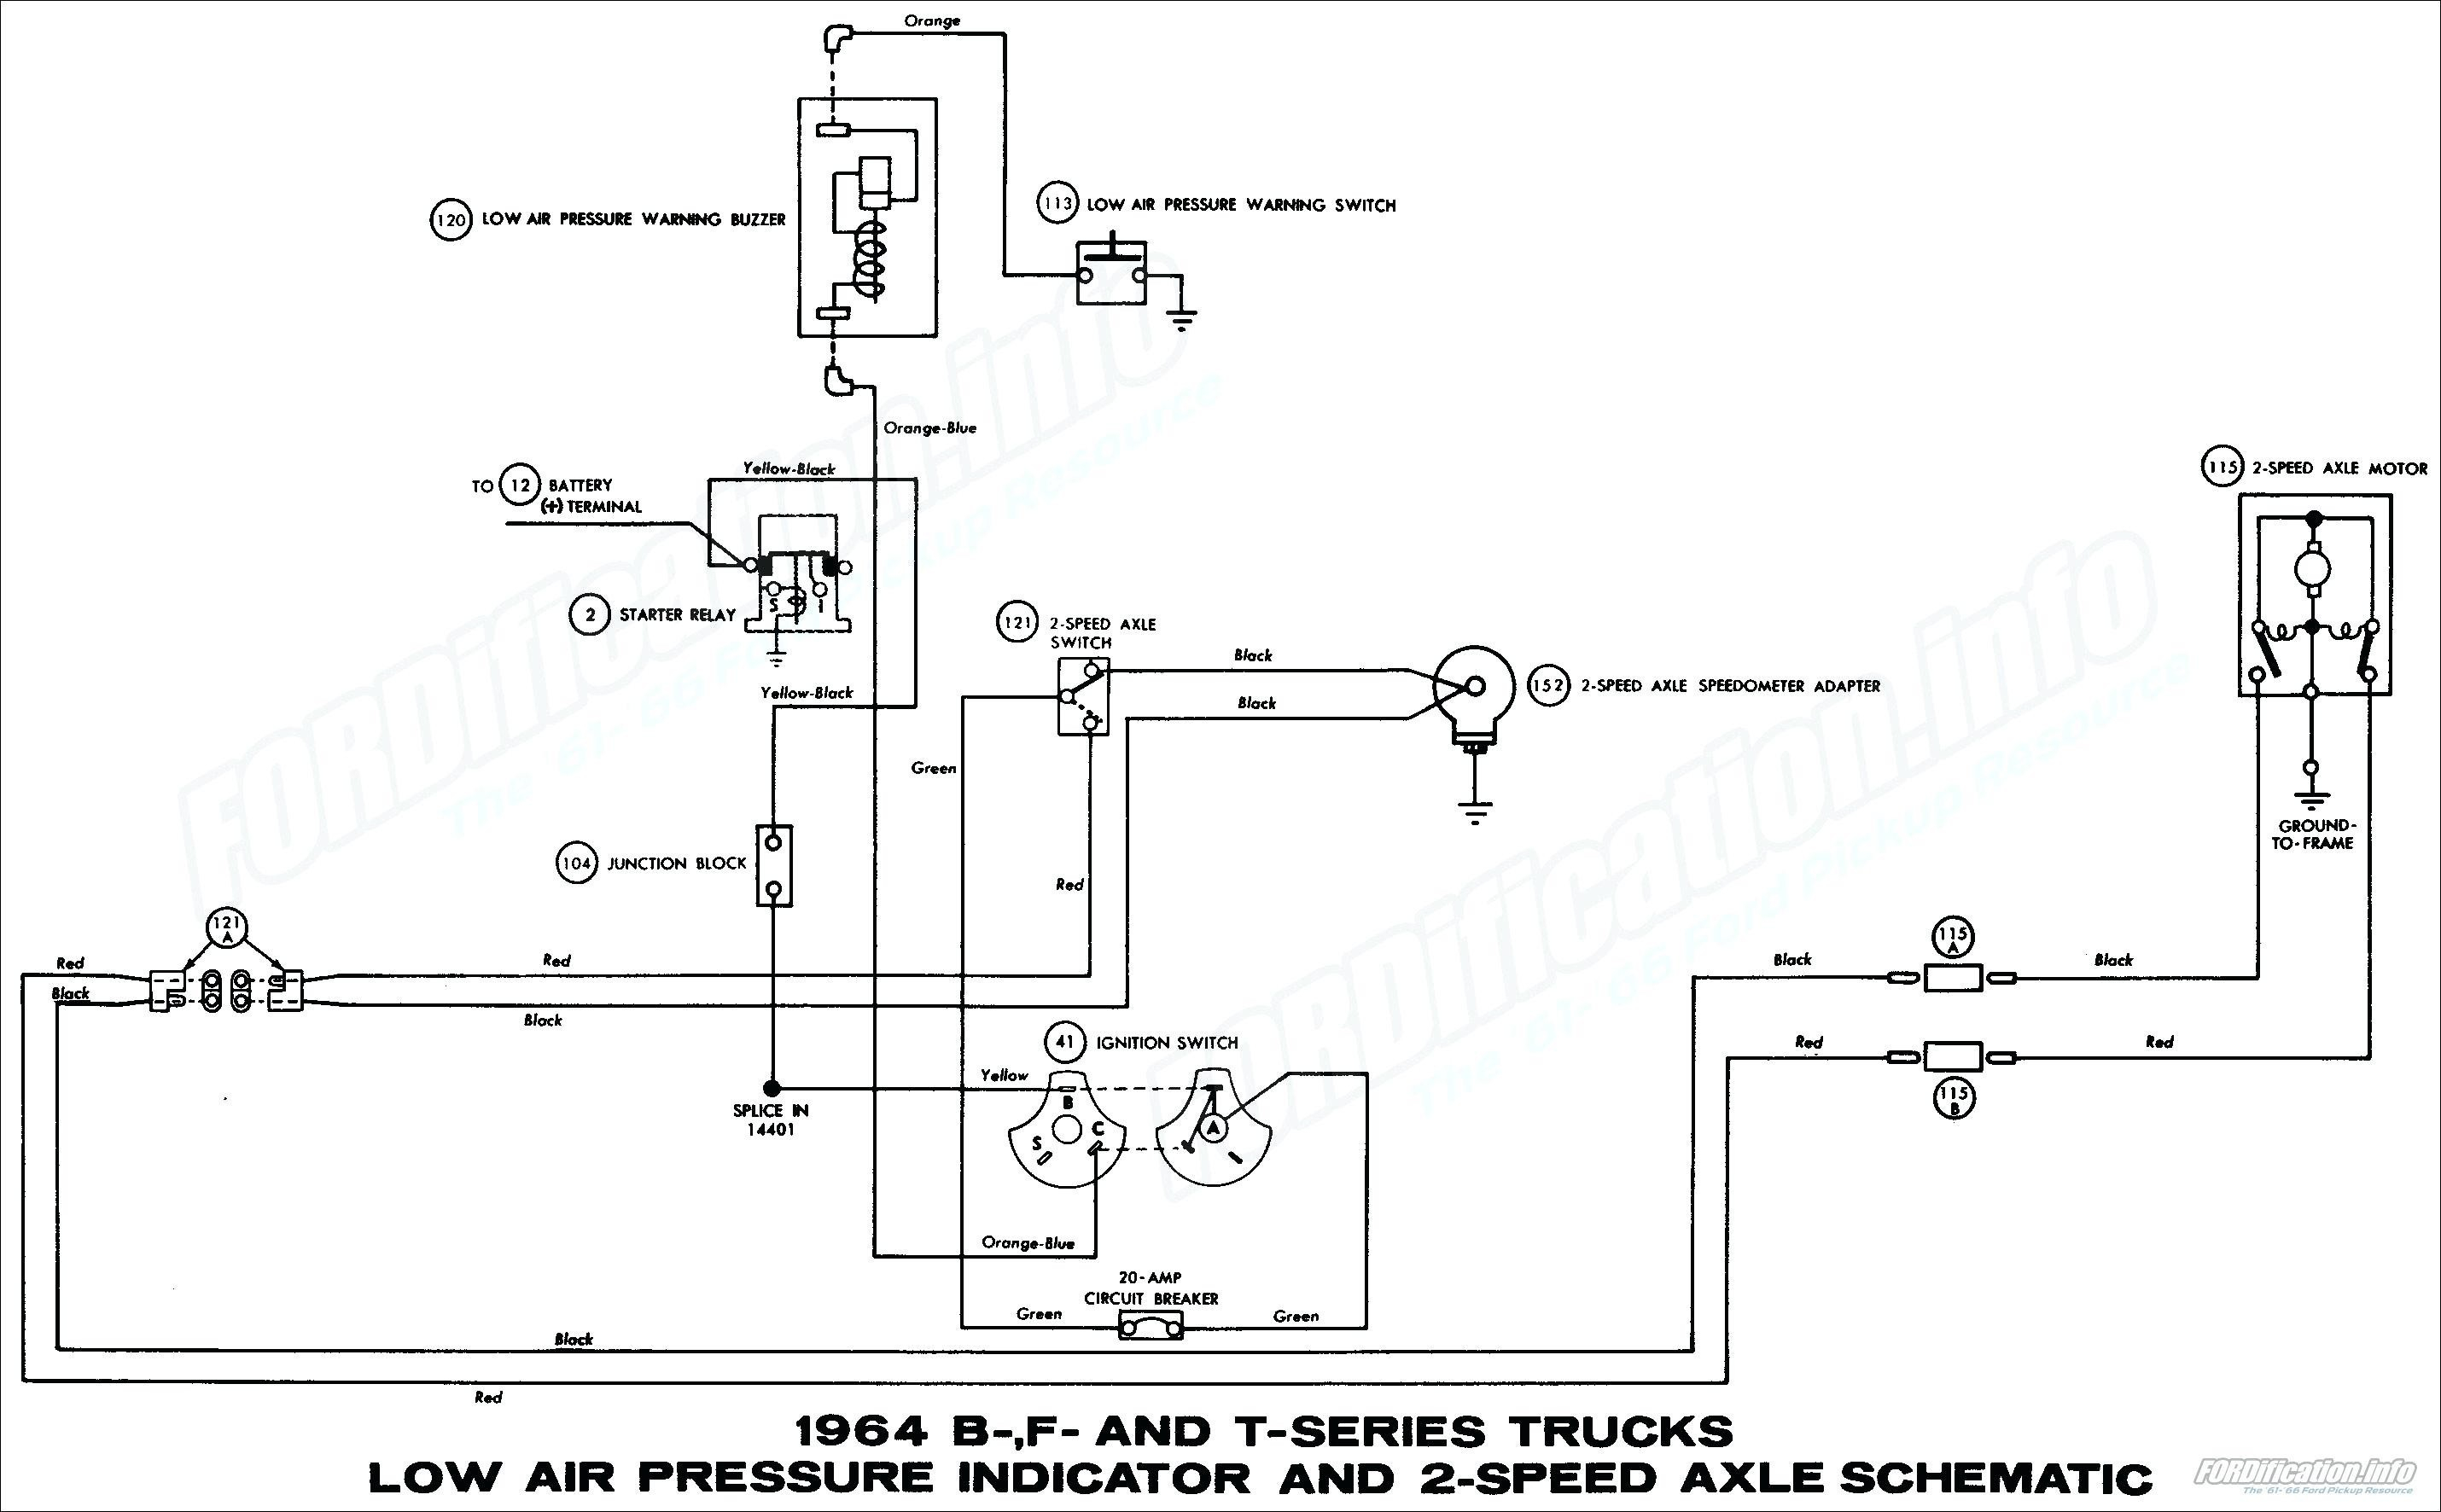 Air Brake Foot Valve Diagram Wiring Diagramsfor Compressor Switches Valves Page 2 Wiring Diagram Go